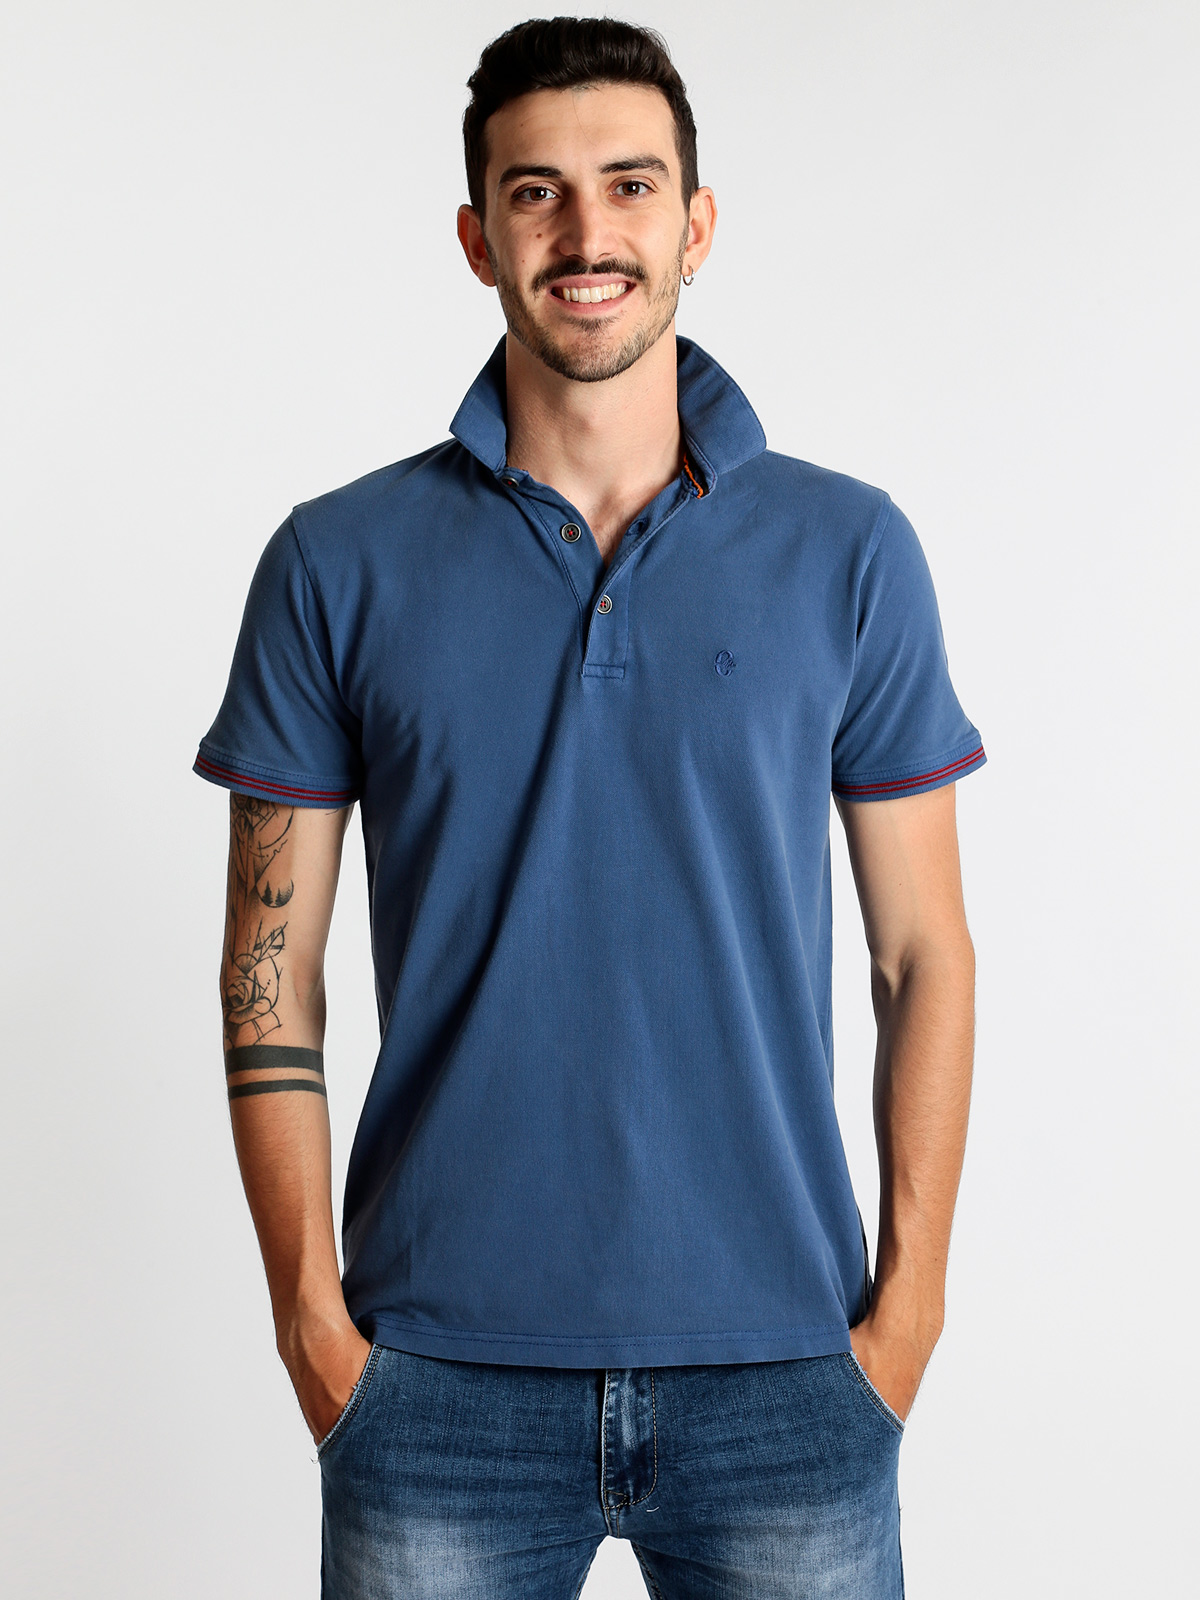 COVERI MOVING blue Men's Summer Casual Short Sleeve   Polo   Shirt